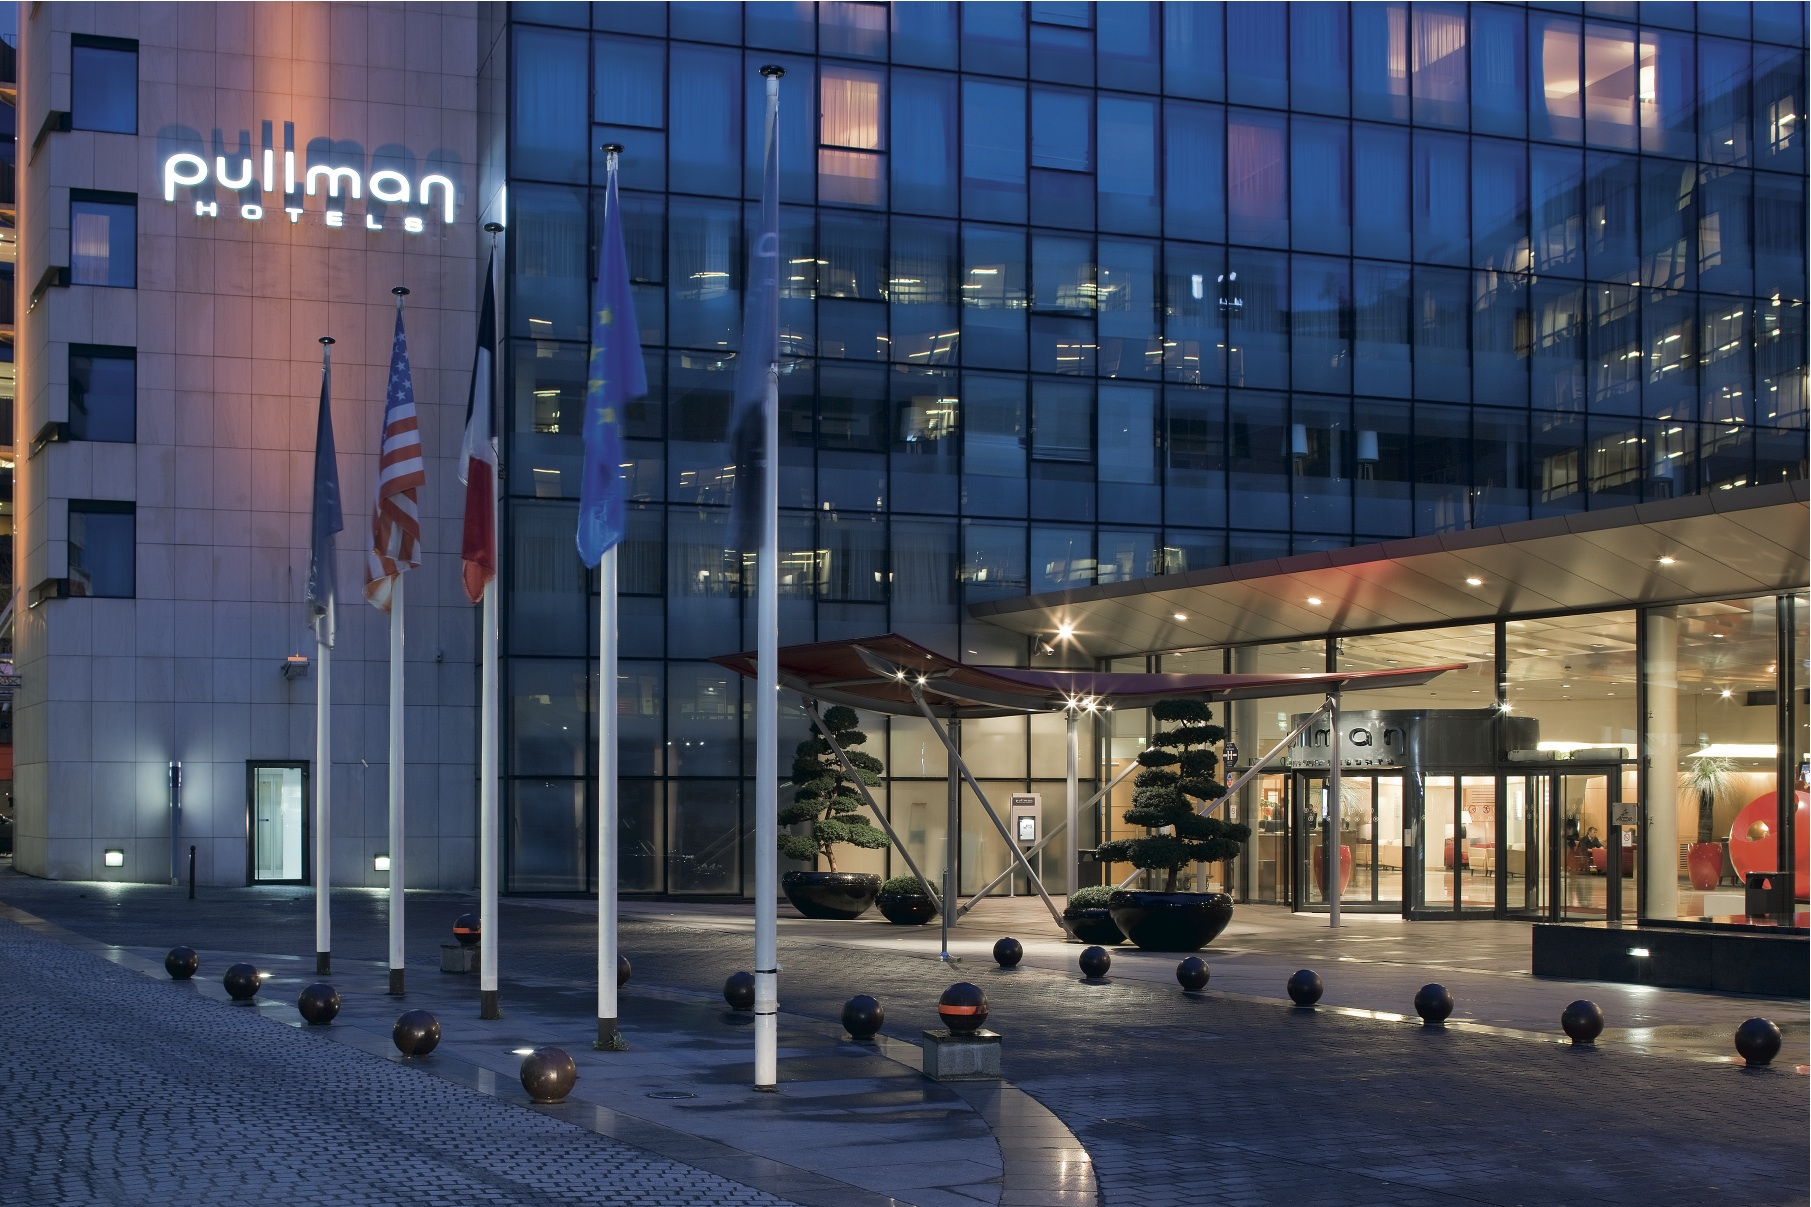 Accor To The Pullman Paris Bercy Under A And Management Back Agreement For 105 Million